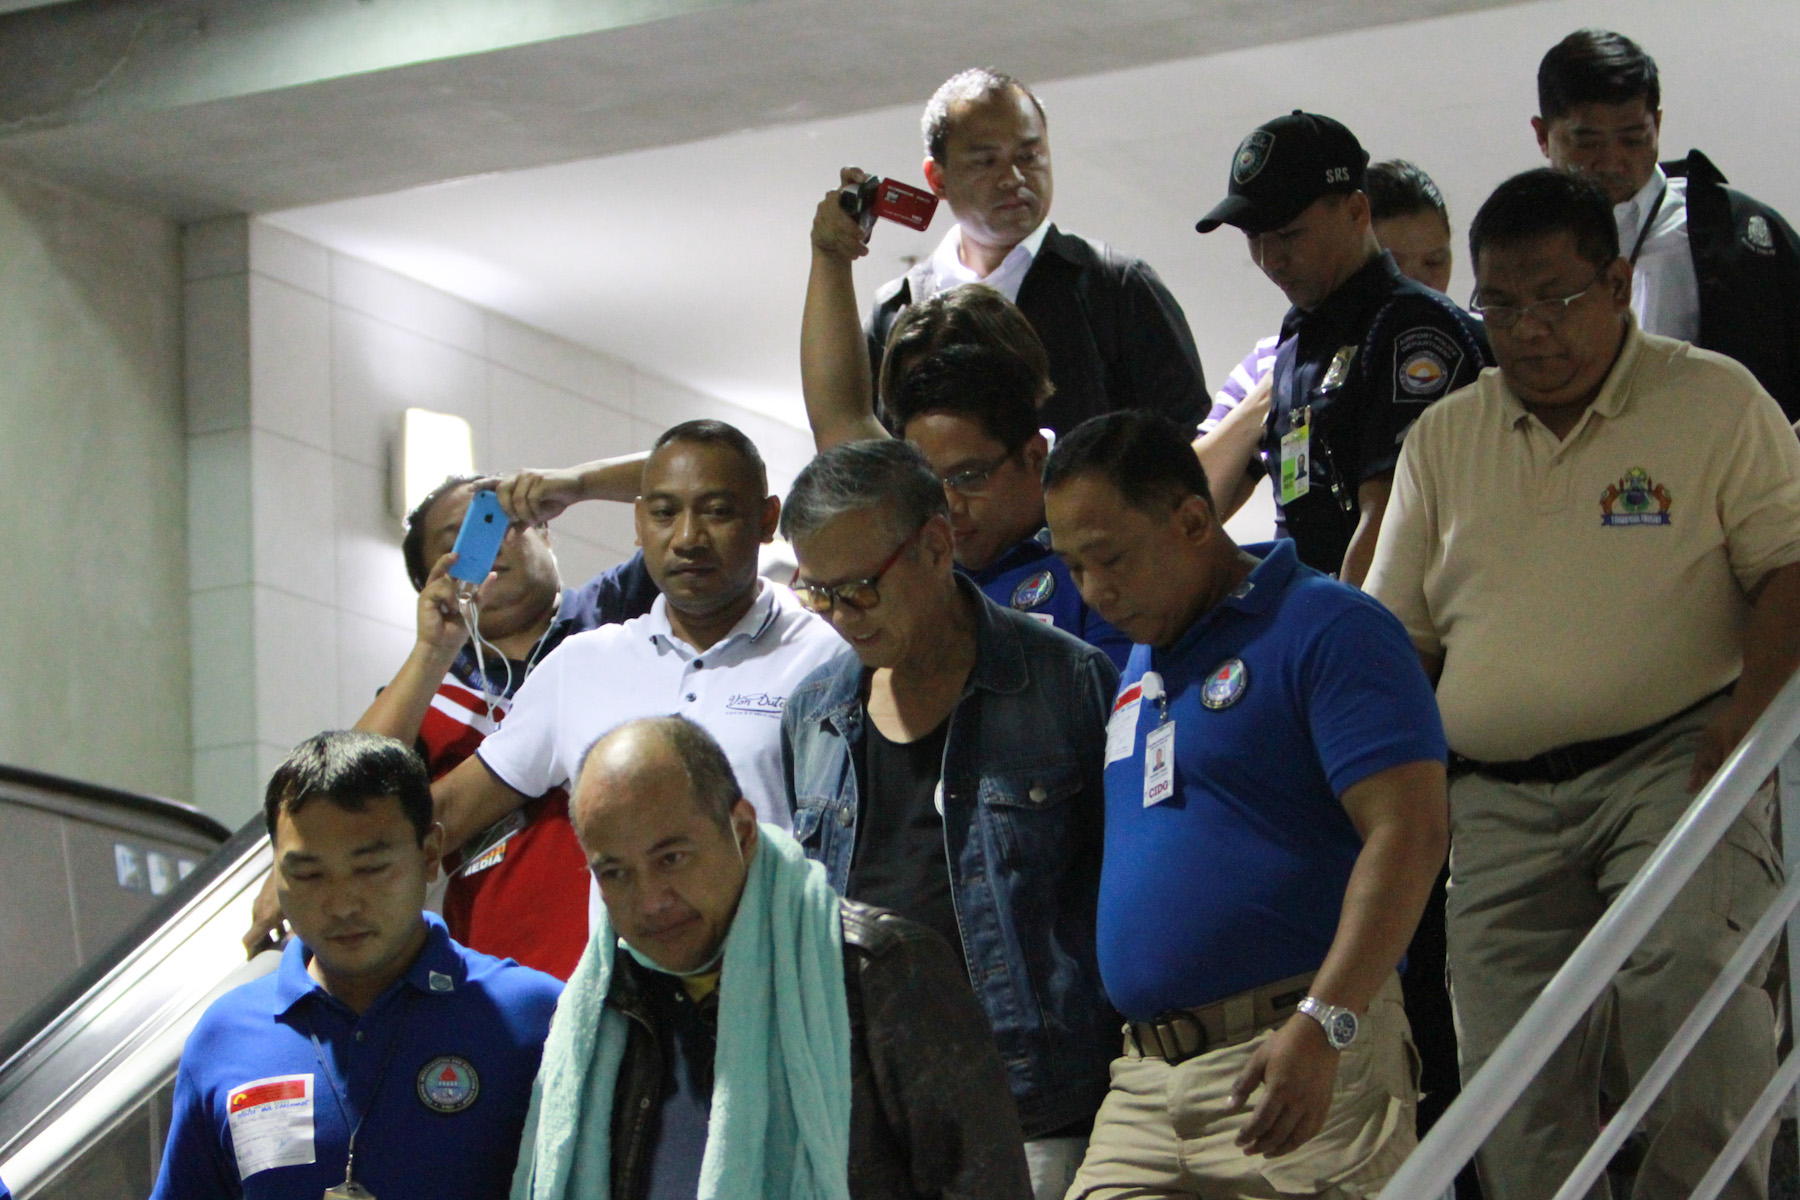 IN CUSTODY. The Reyes brothers, who arrived from Thailand early Friday, September 25, are set to be brought to Palawan Friday afternoon. Photo by Czeasar Dancel/Rappler